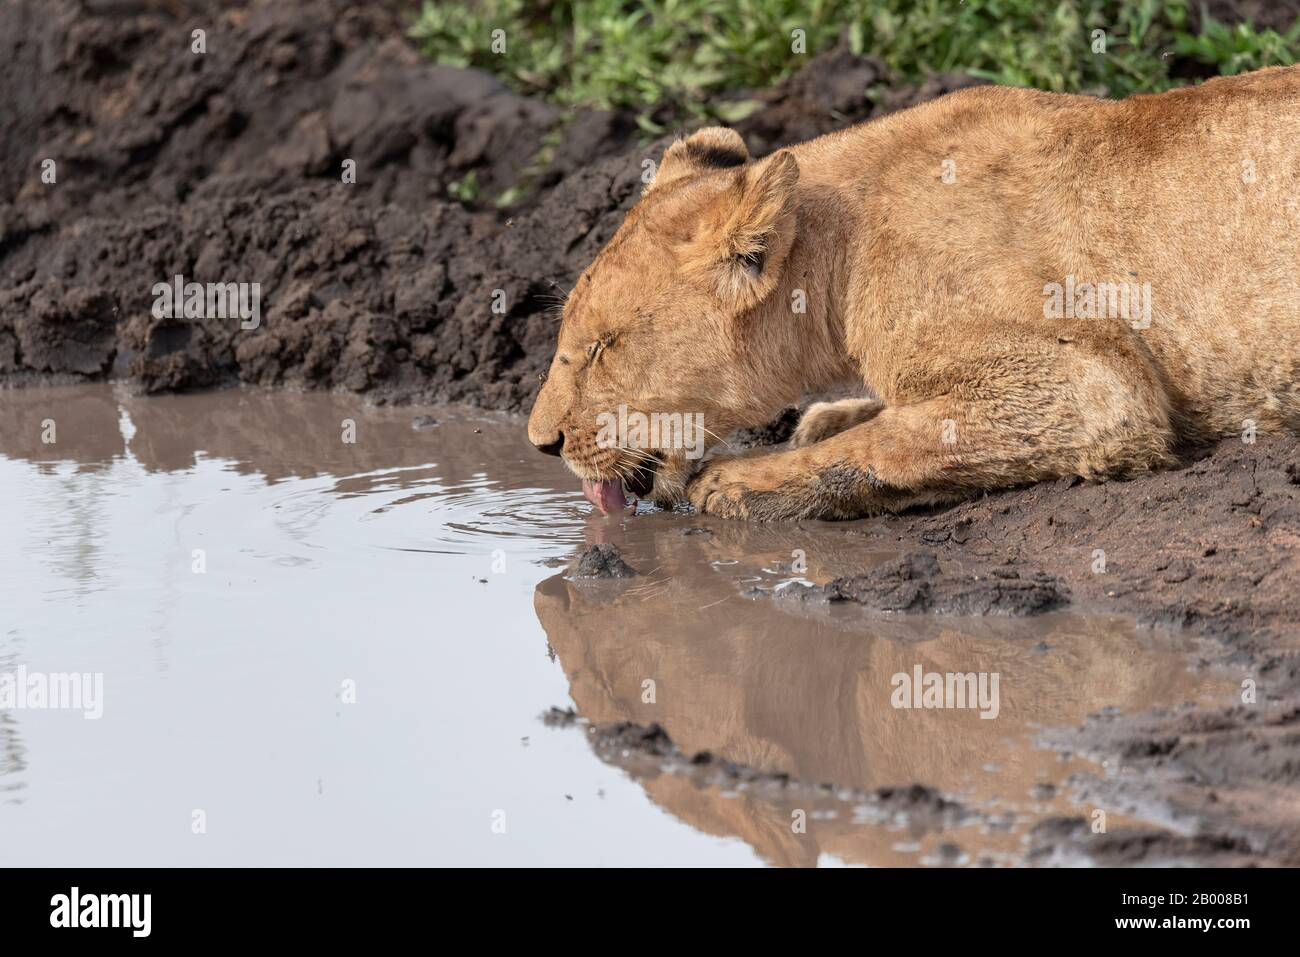 Lioness lapping up a drink in the Serengeti Stock Photo